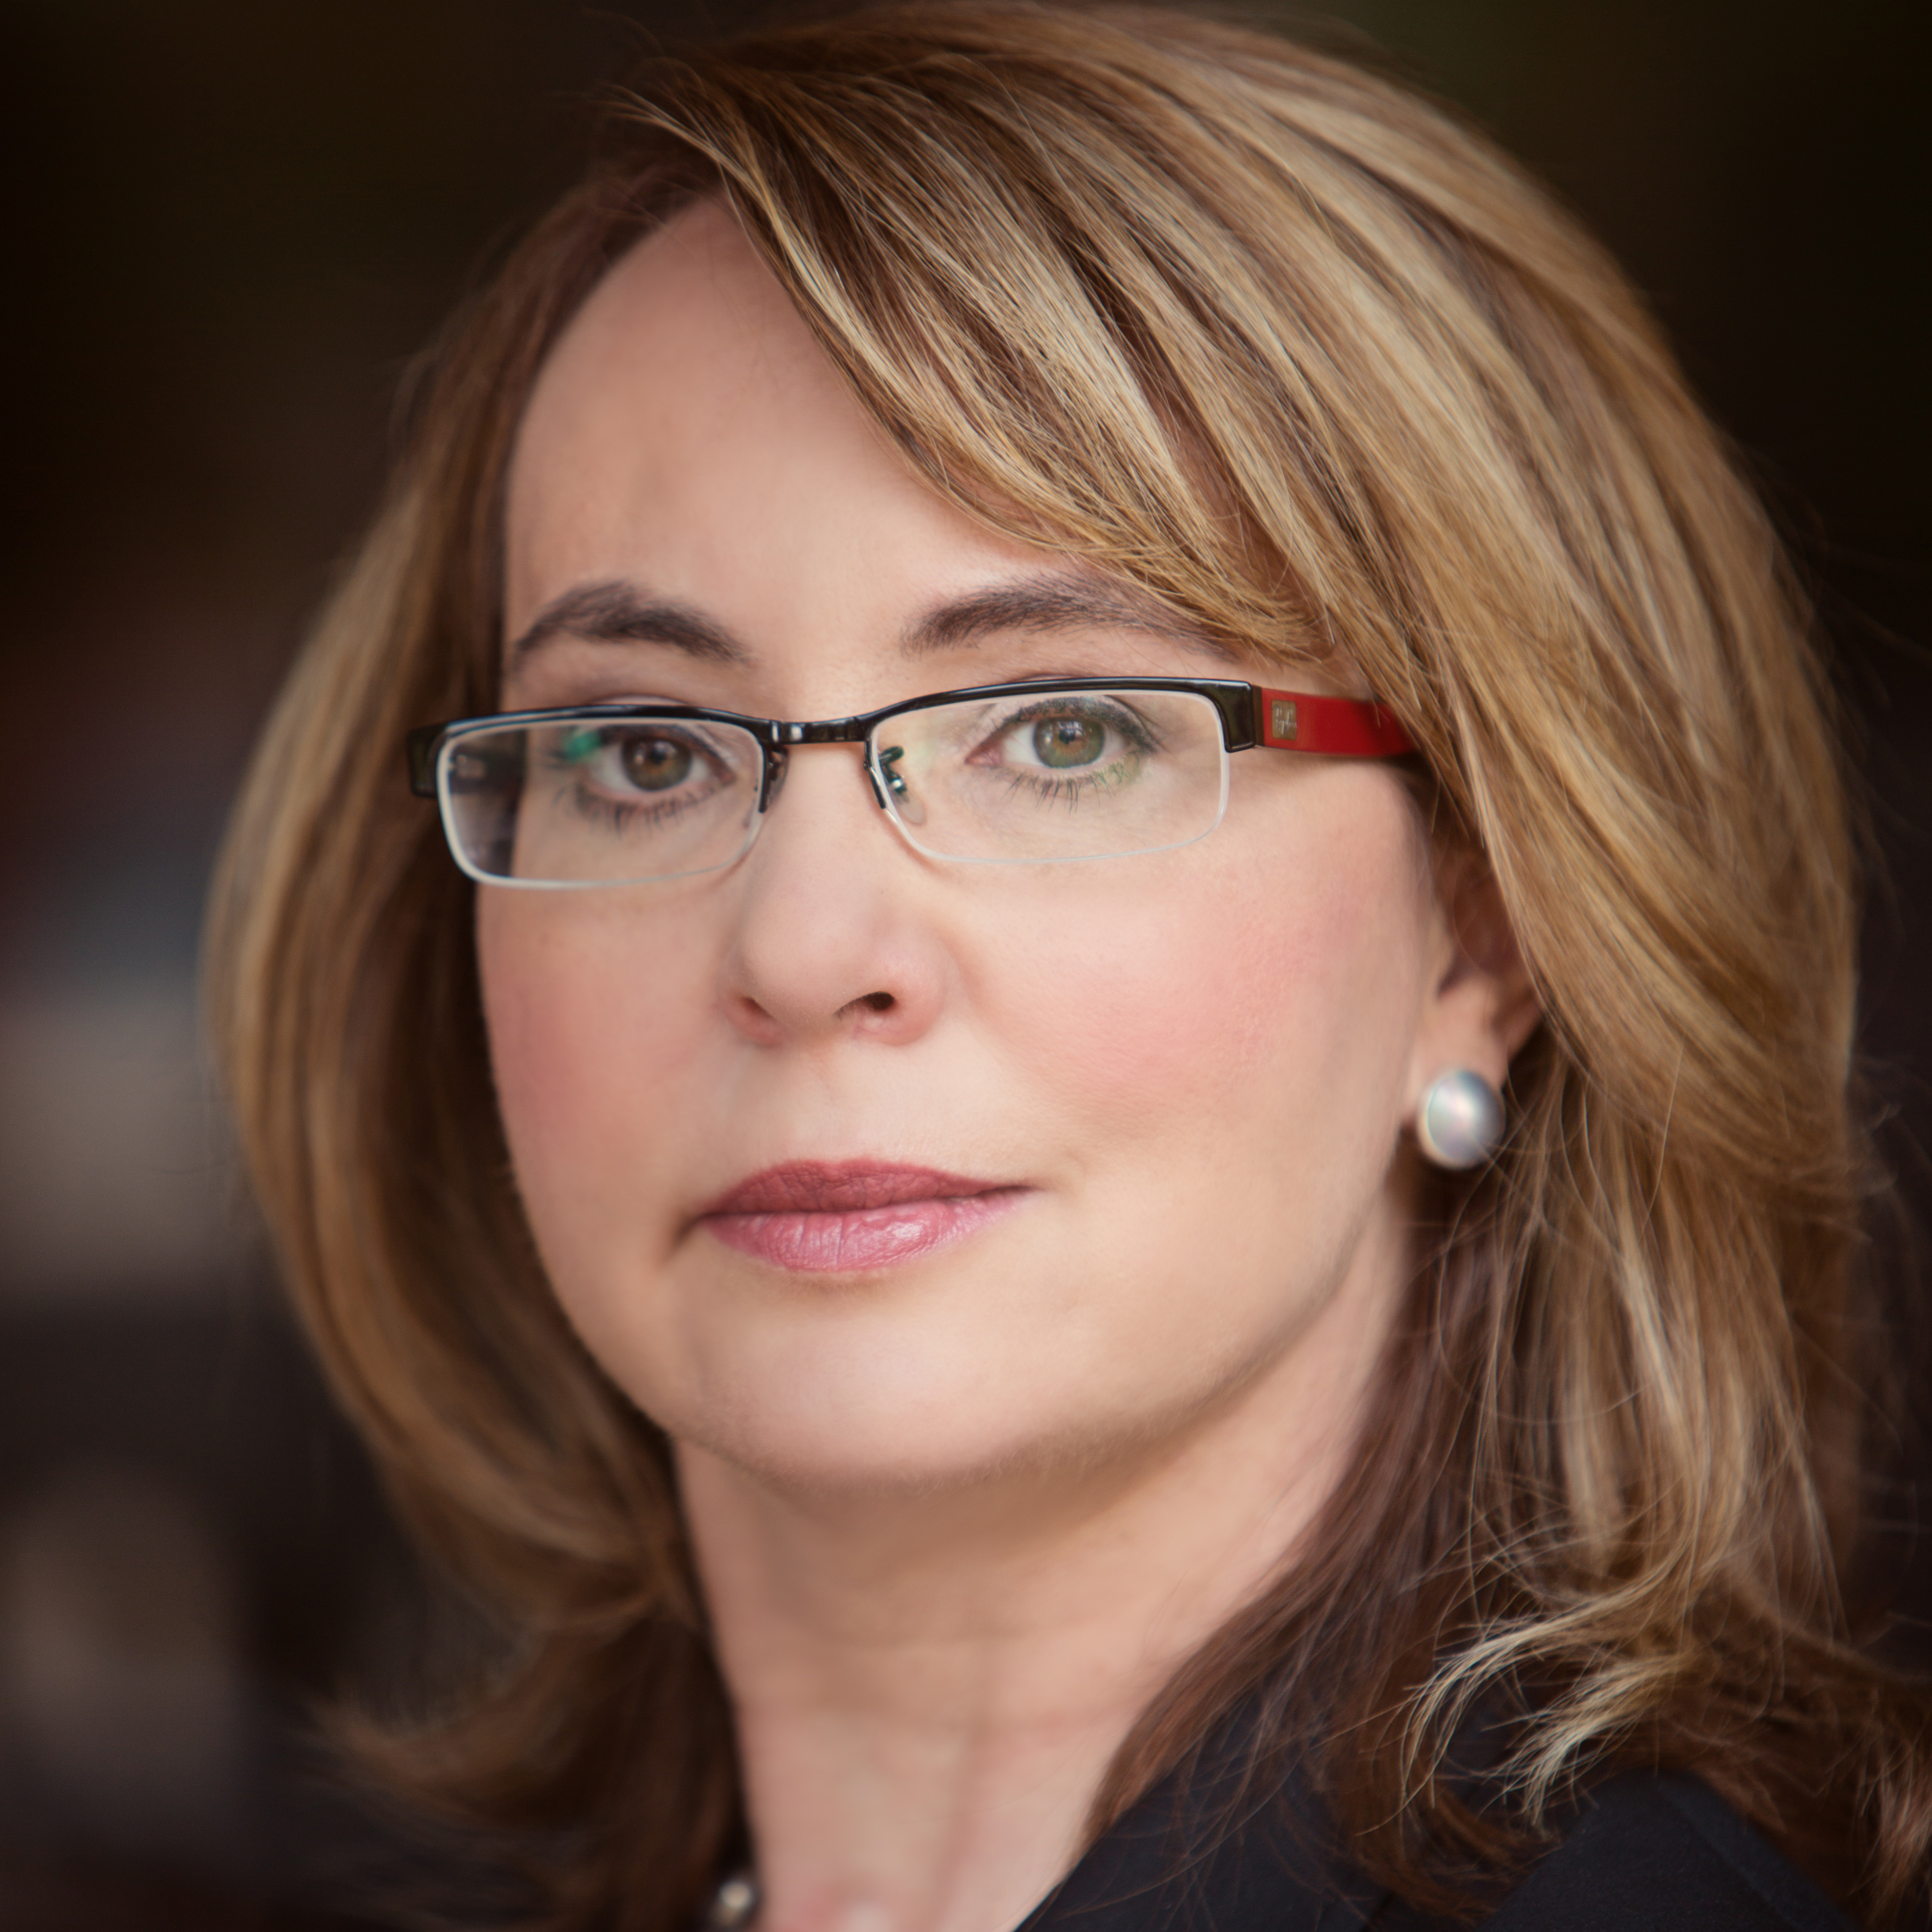 Gabrielle Giffords - Former U.S. Representative from Arizona